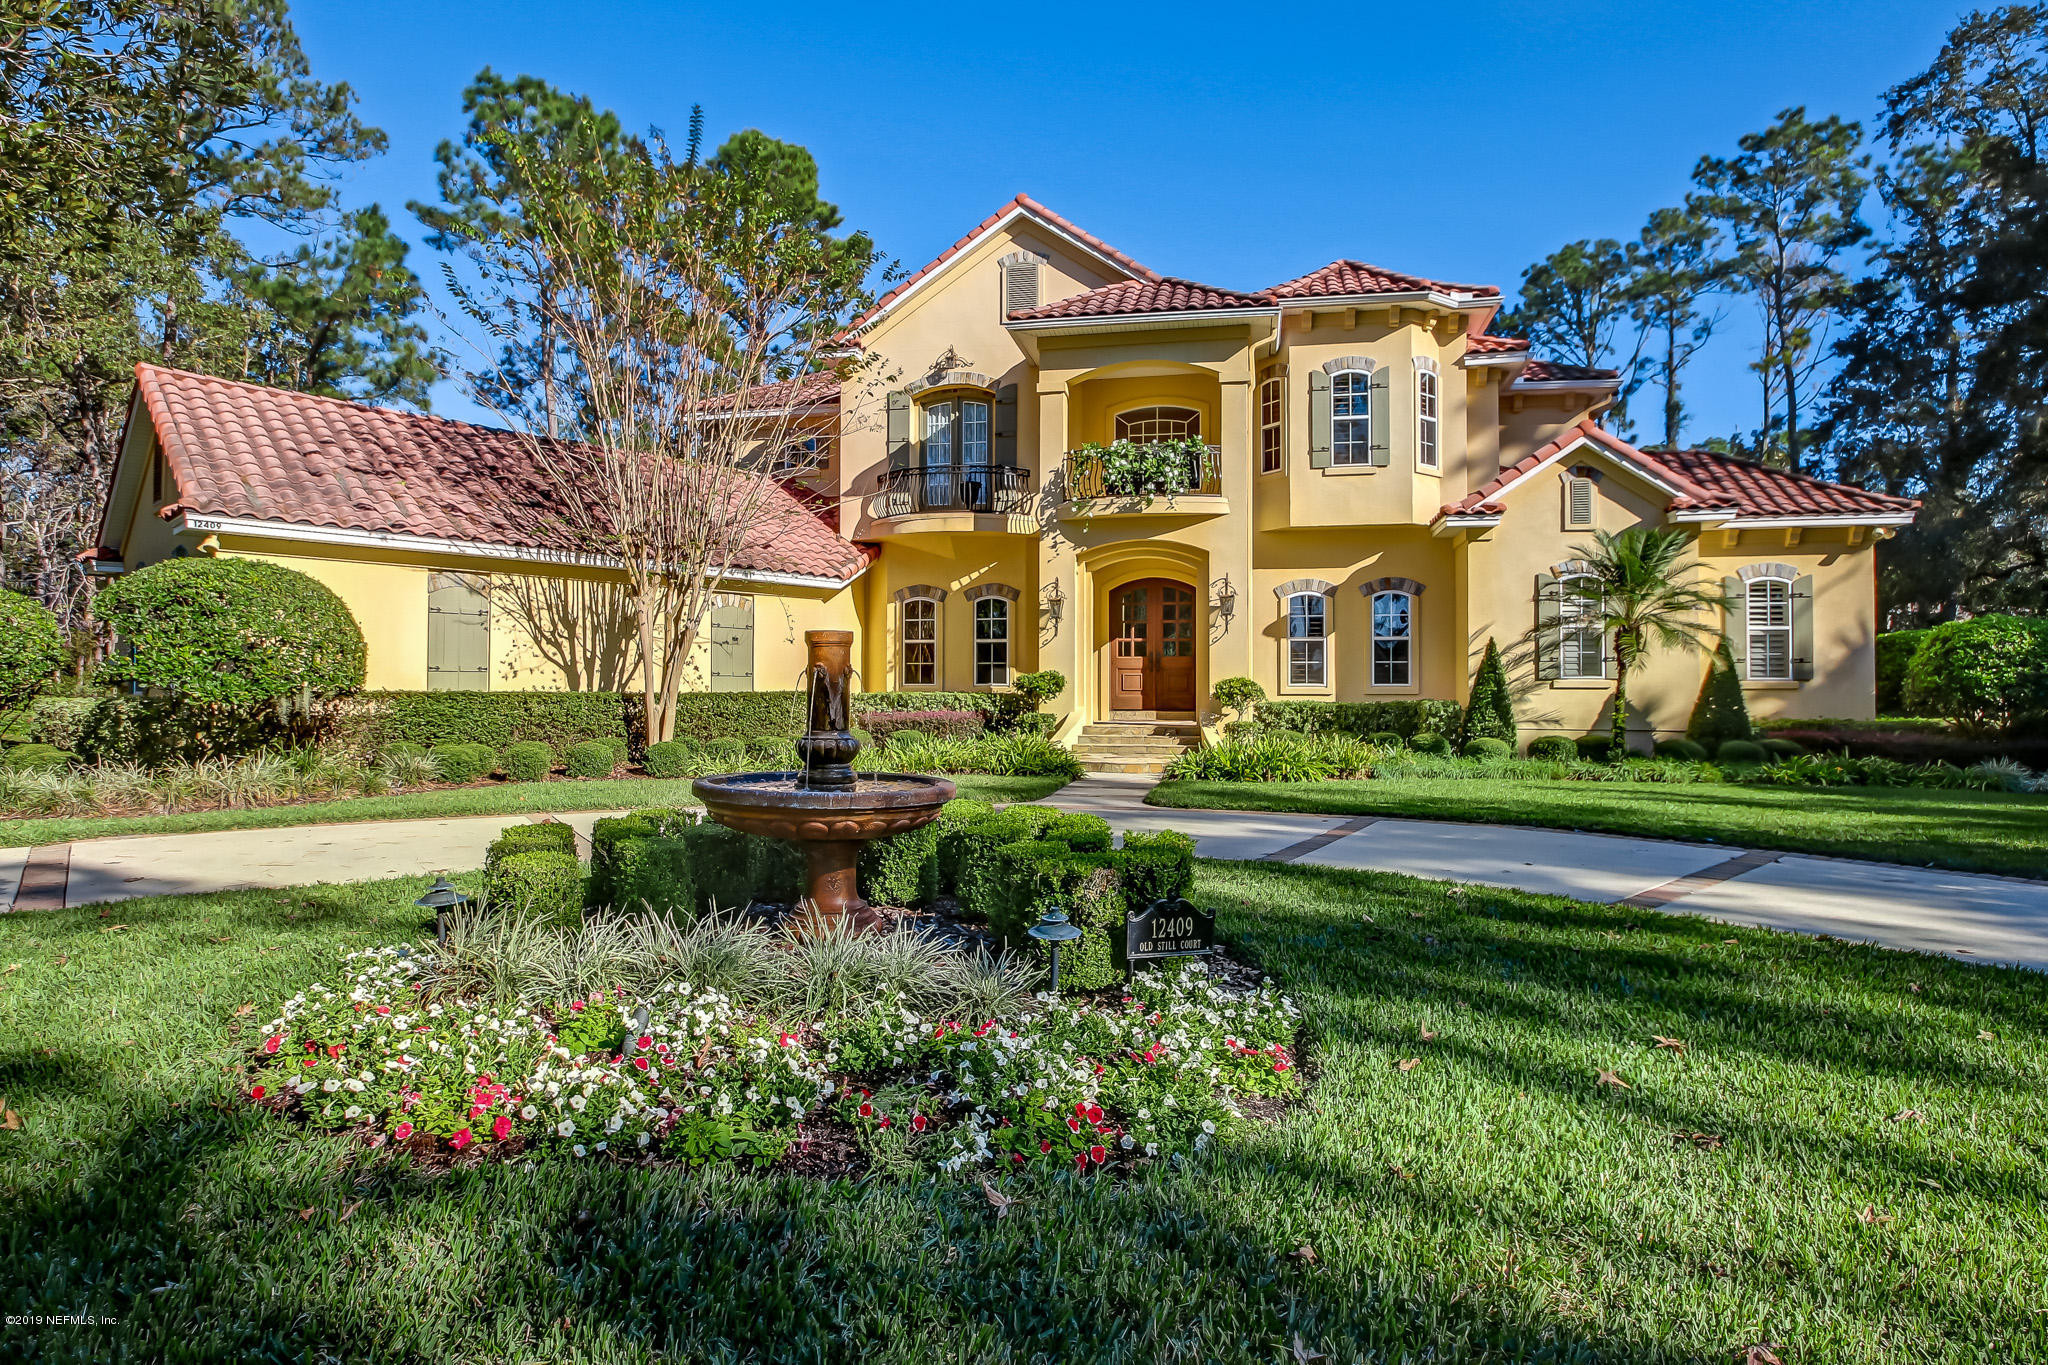 12409 OLD STILL, PONTE VEDRA BEACH, FLORIDA 32082, 4 Bedrooms Bedrooms, ,4 BathroomsBathrooms,Residential - single family,For sale,OLD STILL,984295